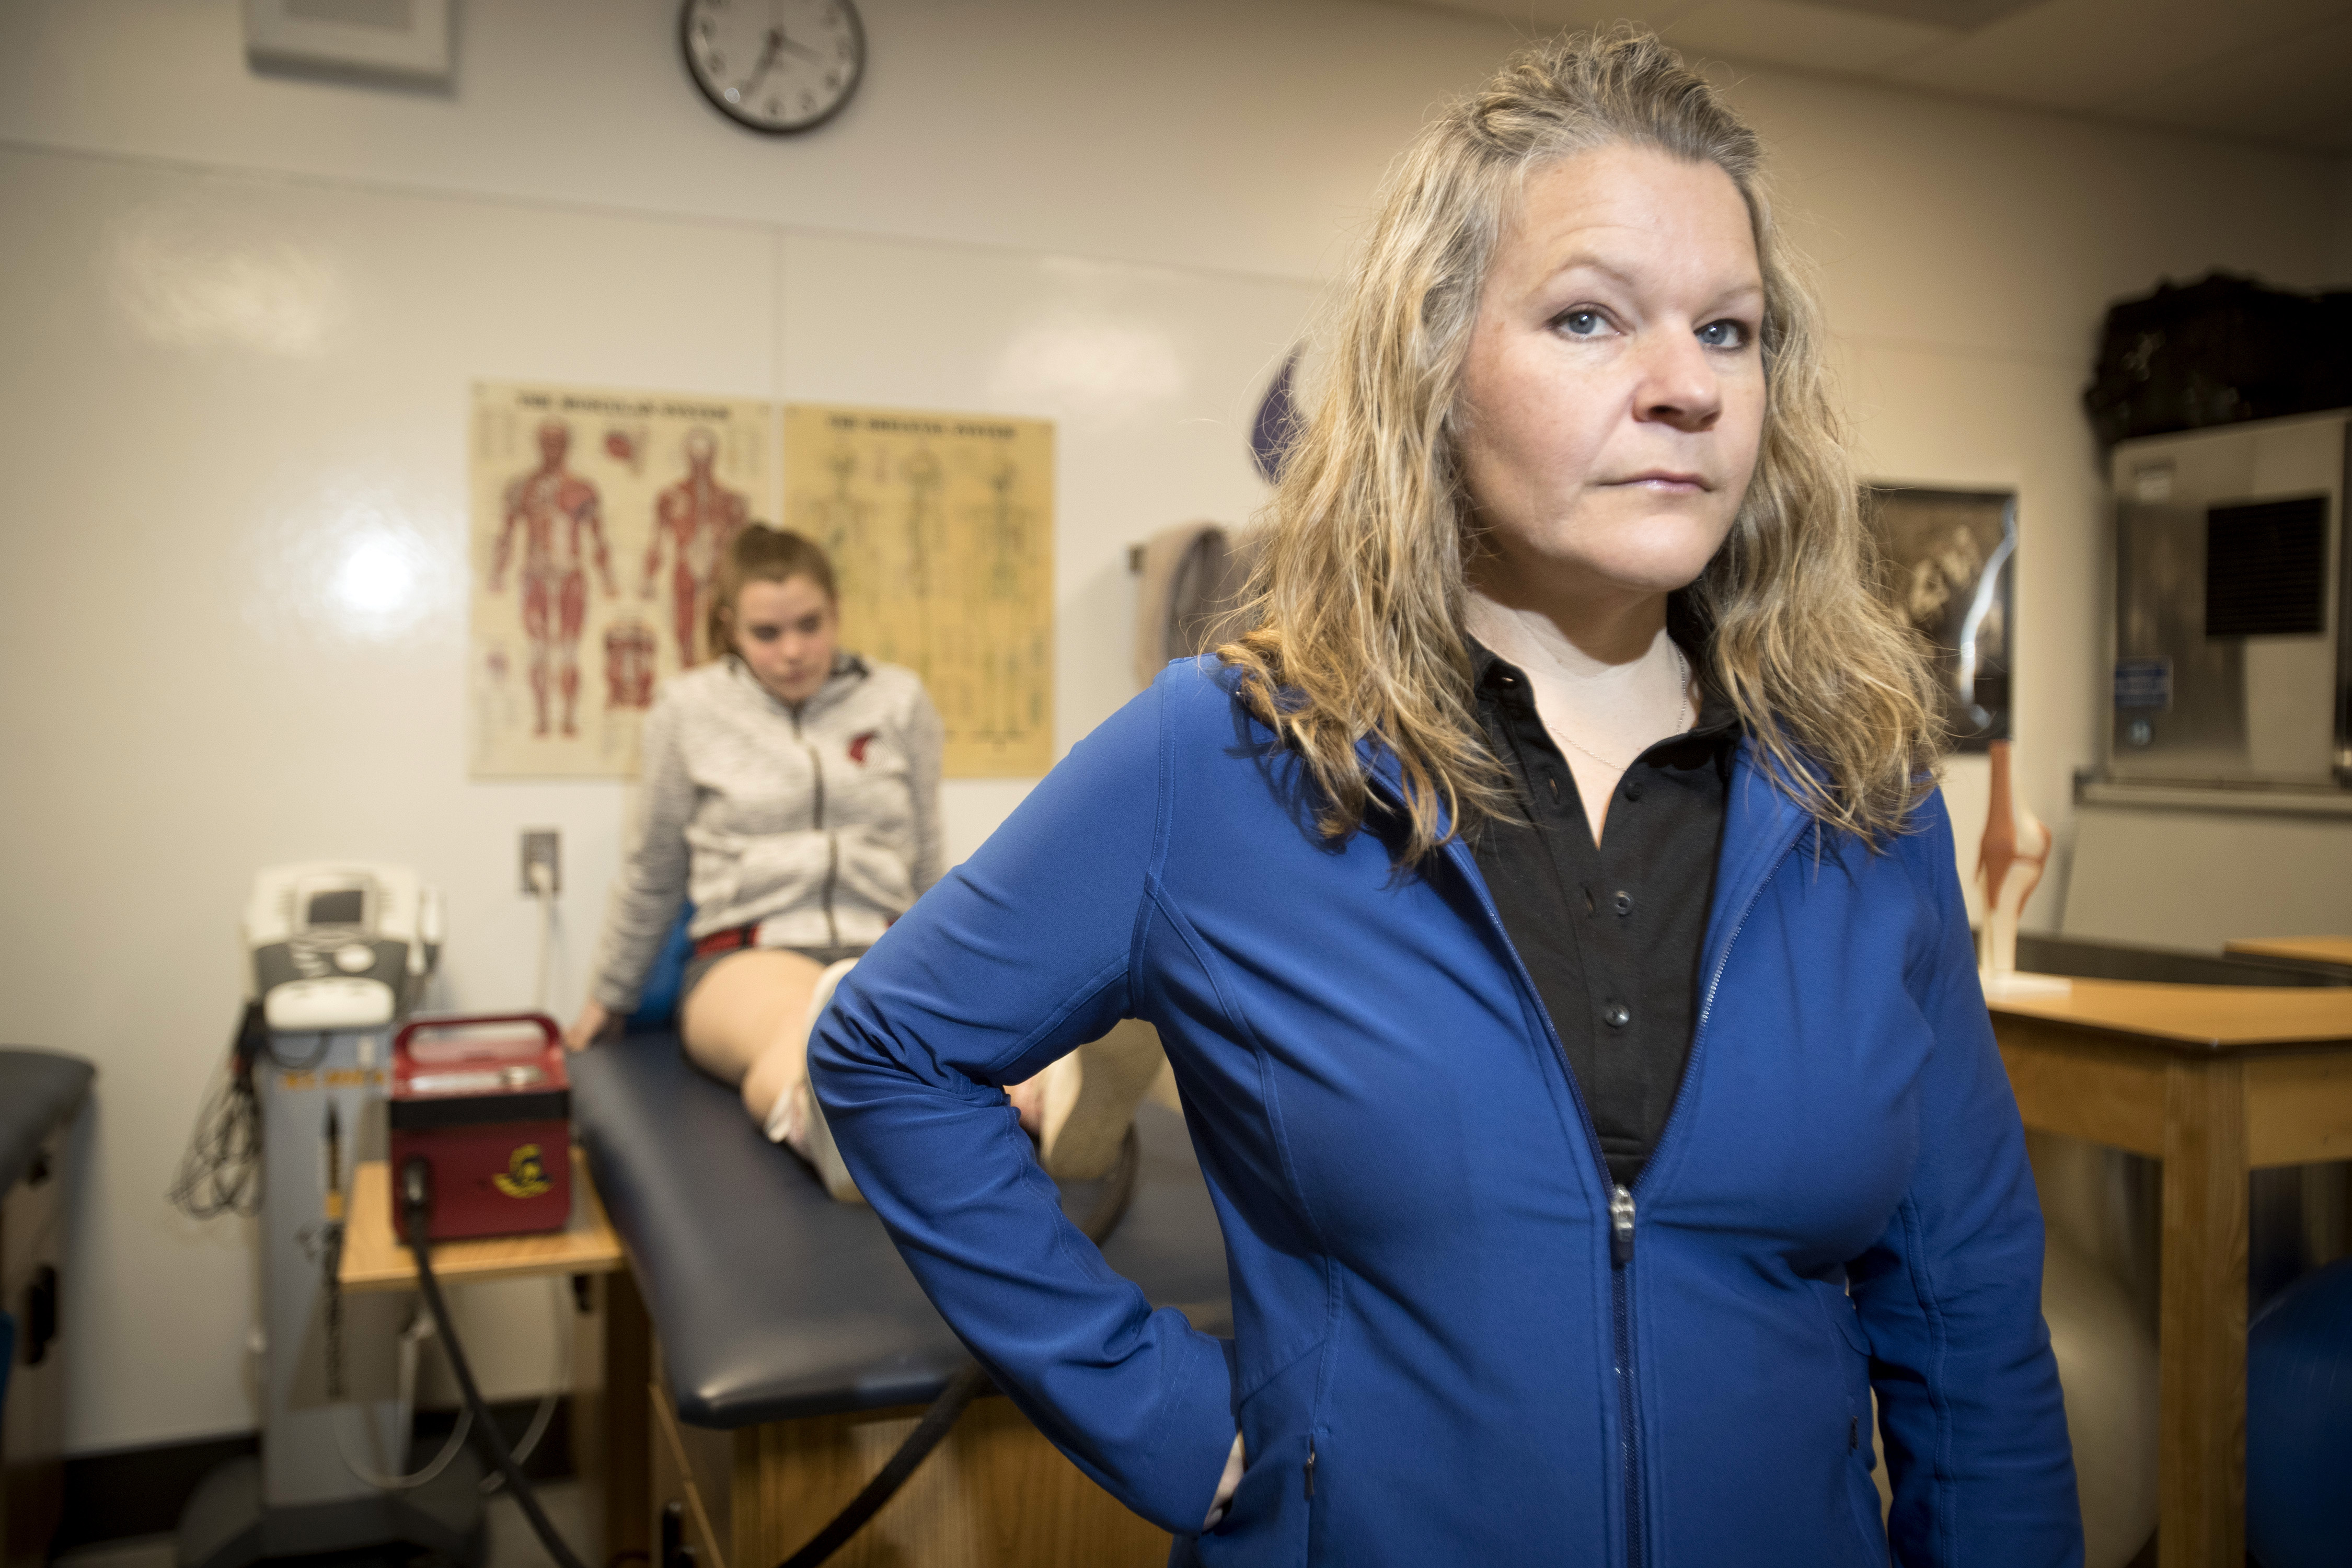 Missing the trainer: Small and rural schools are least likely to have athletic trainers